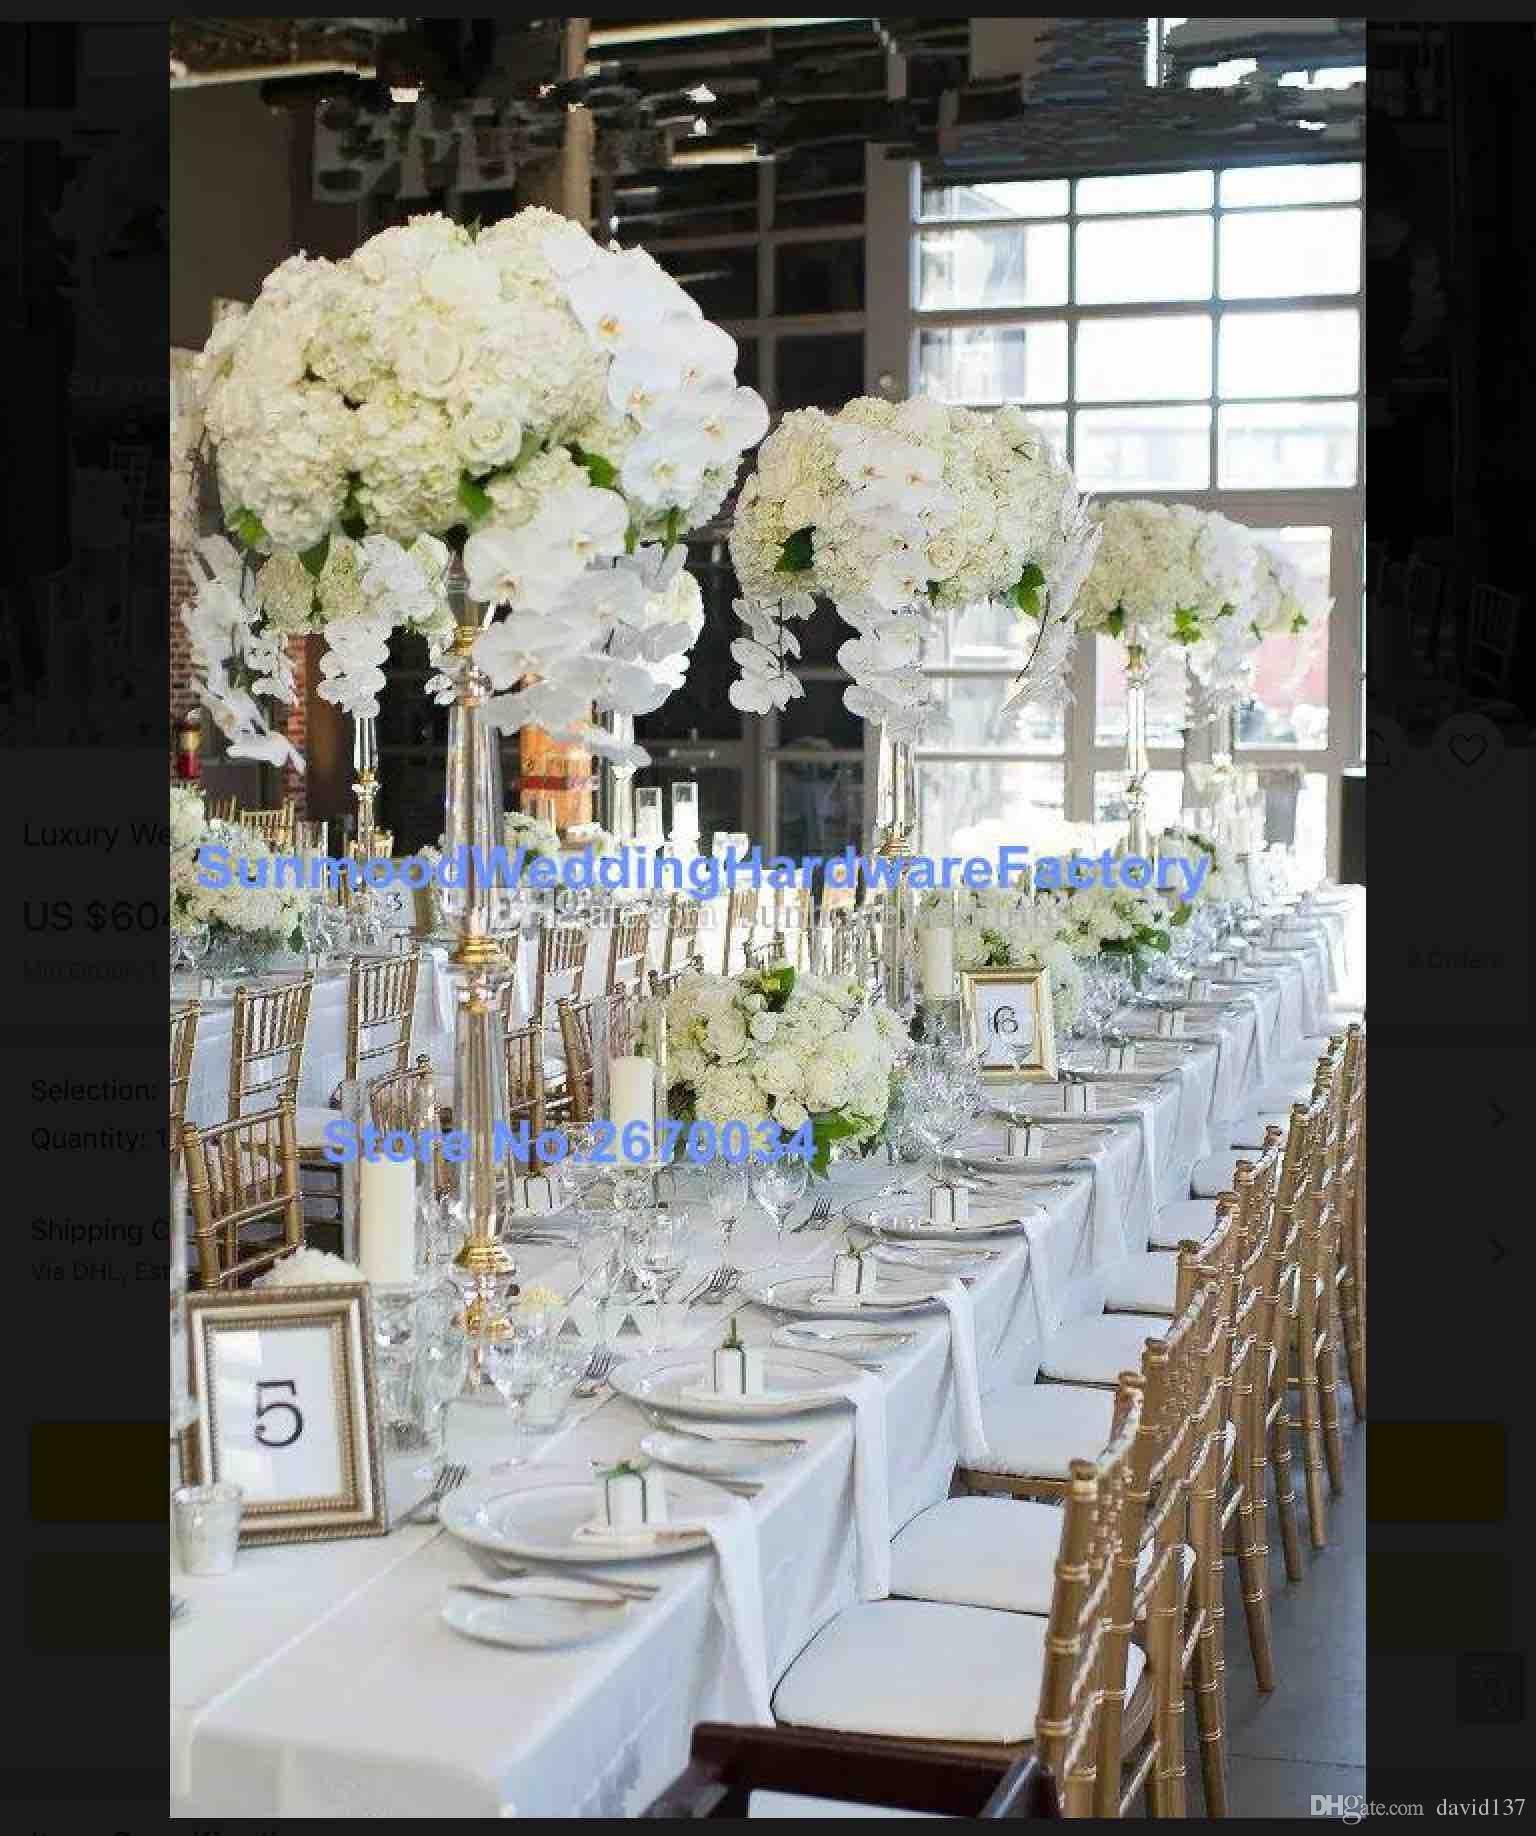 Latest Clear Acrylic Table For Wedding Stands Acrylic Wedding Table Decoration Theme Party Decoration Theme Party Decorations From David137 396 99